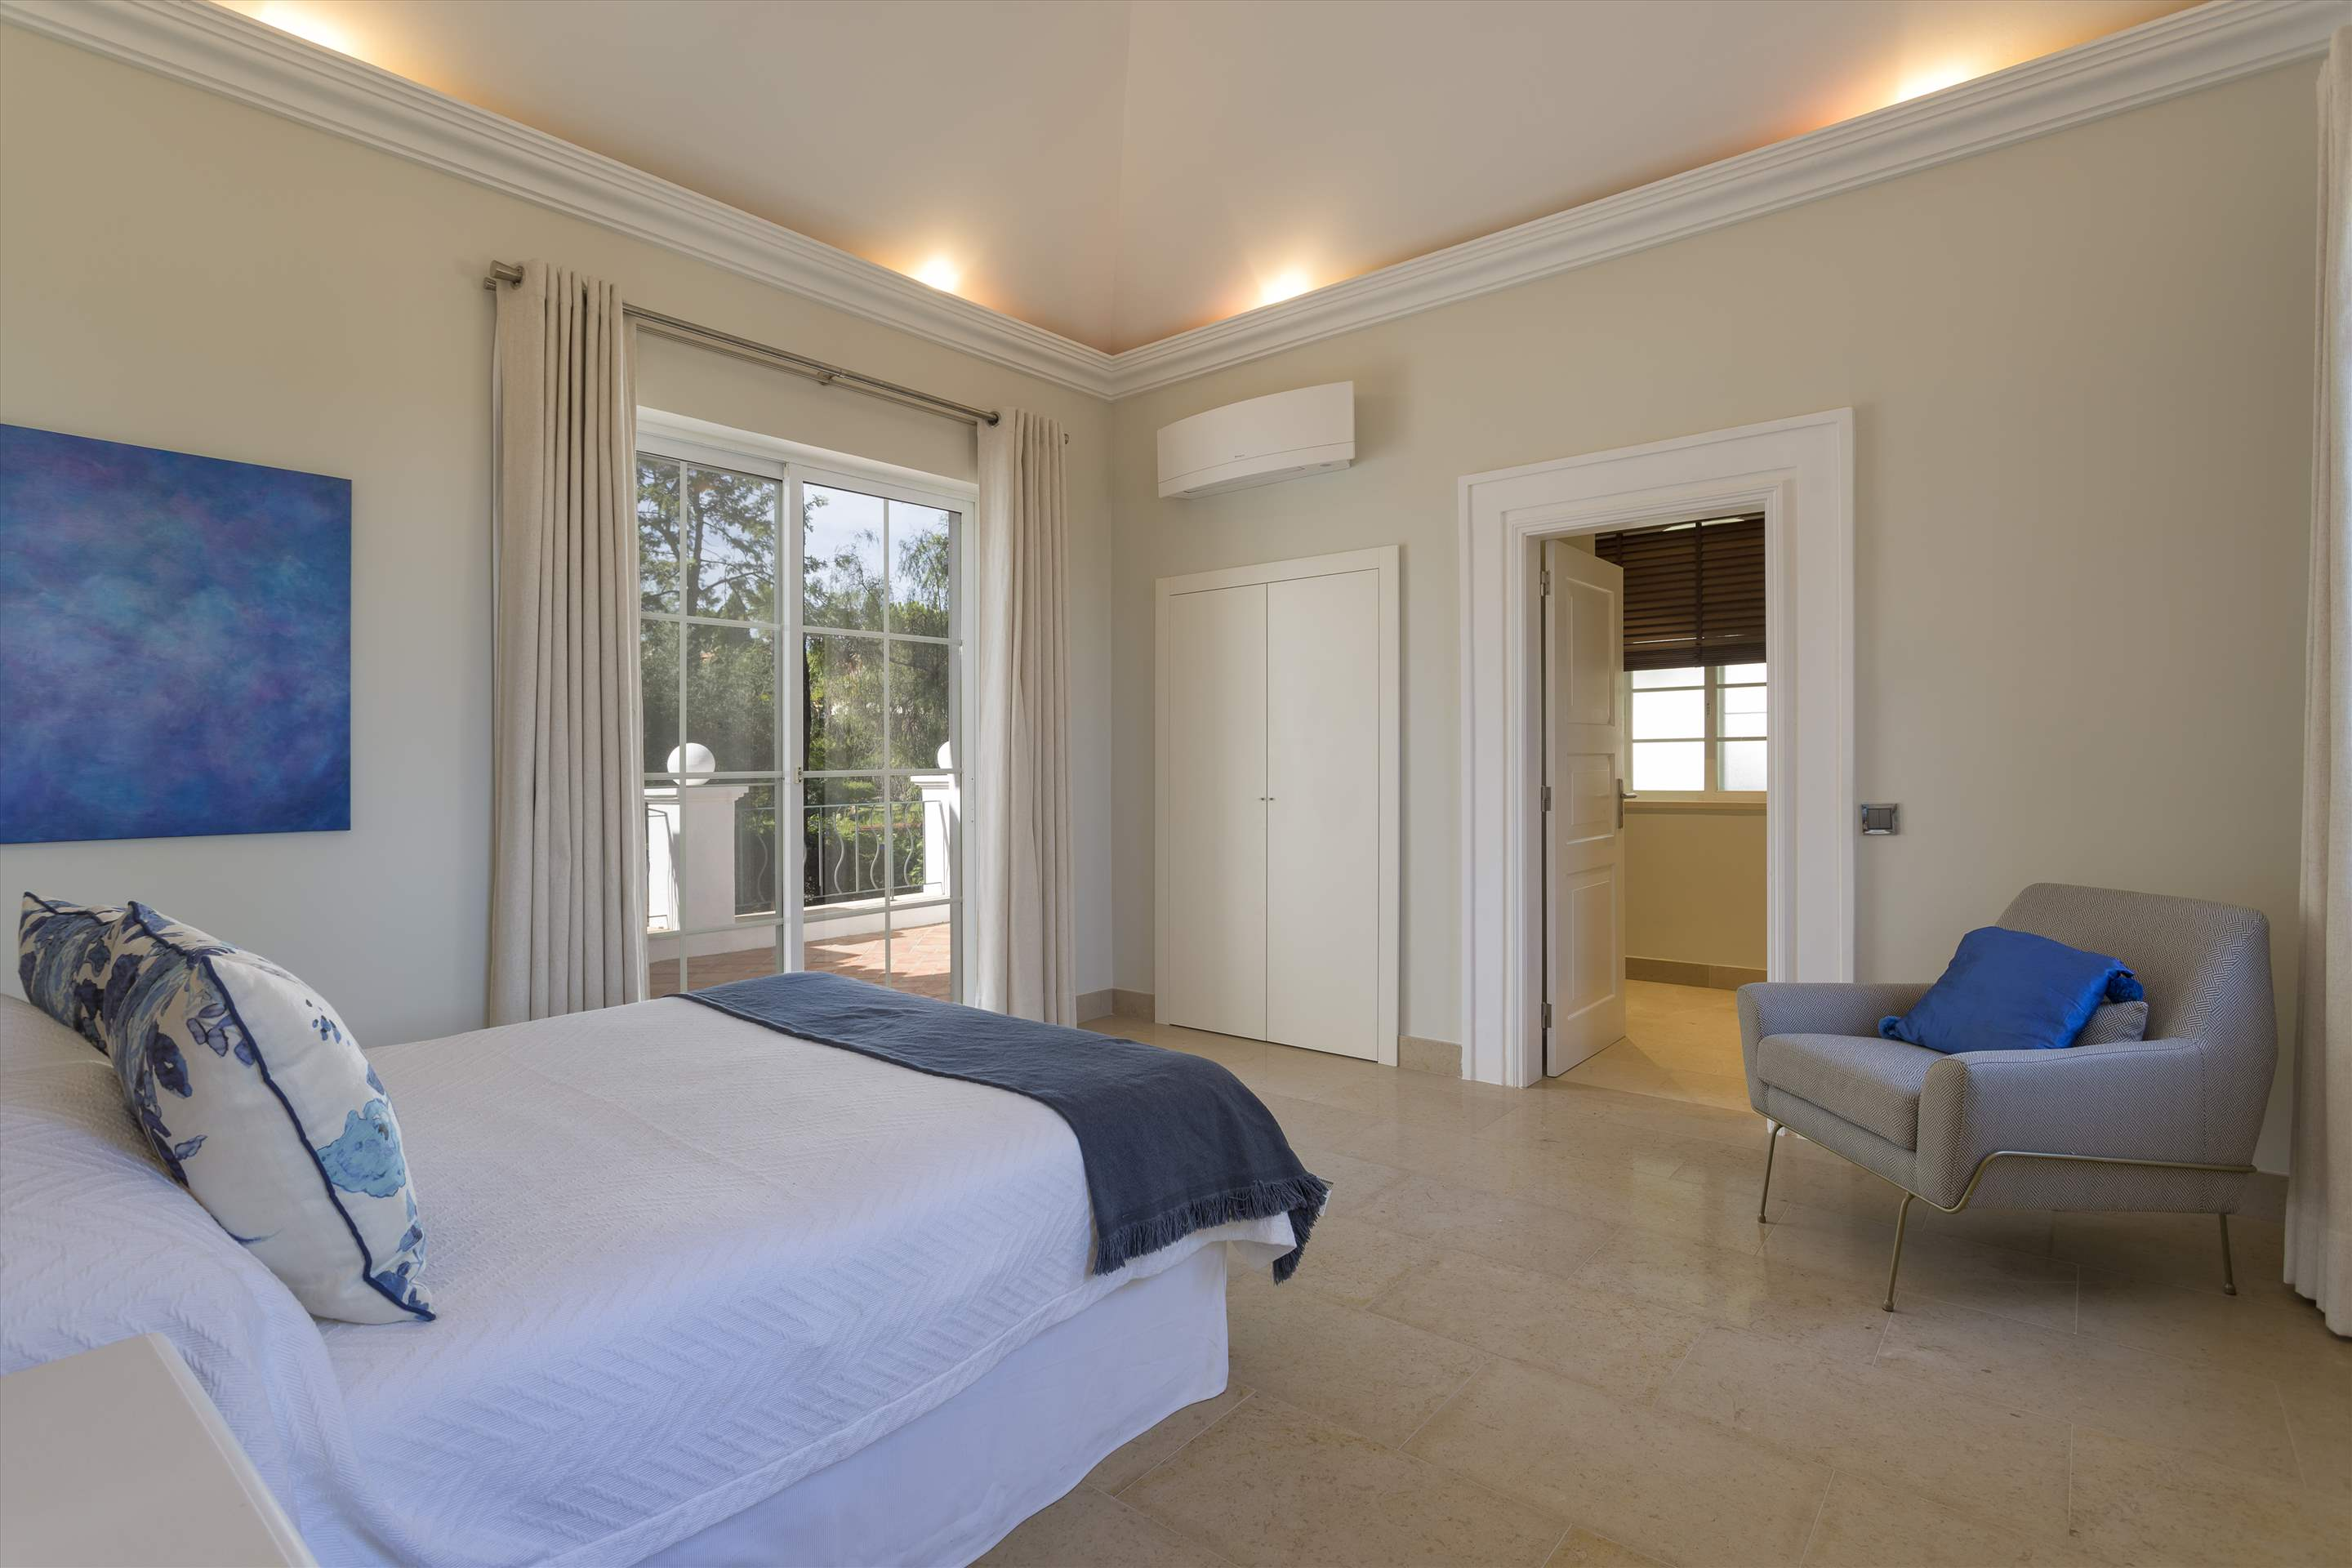 Villa Lavinia, Four Bedrooms, 4 bedroom villa in Quinta do Lago, Algarve Photo #15